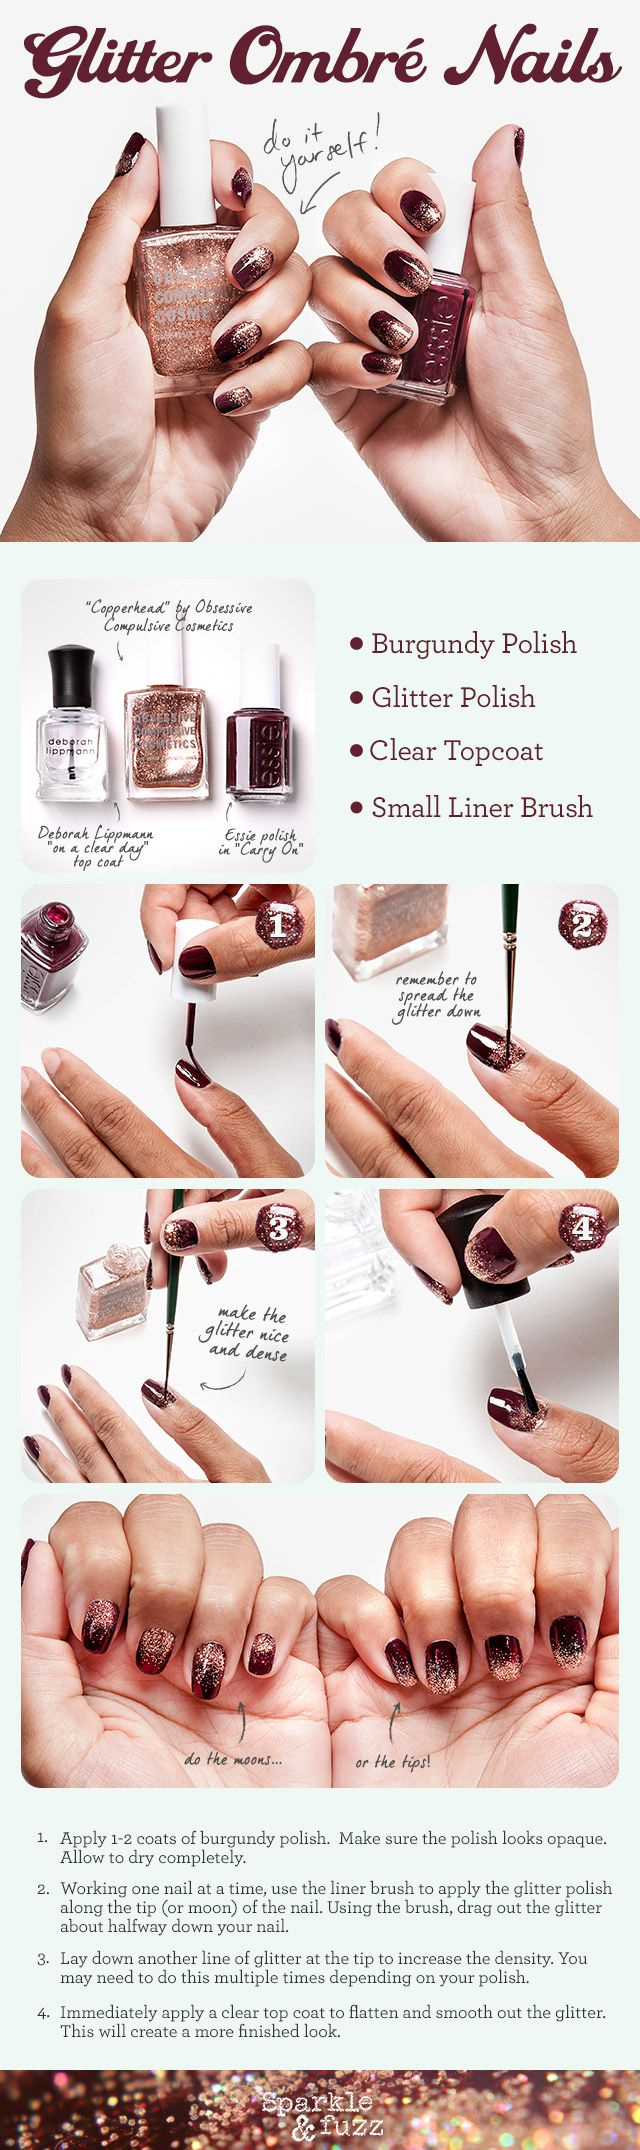 Glitter Ombre Nails DIY - Inspired by The Great Gatsby   Polished ...